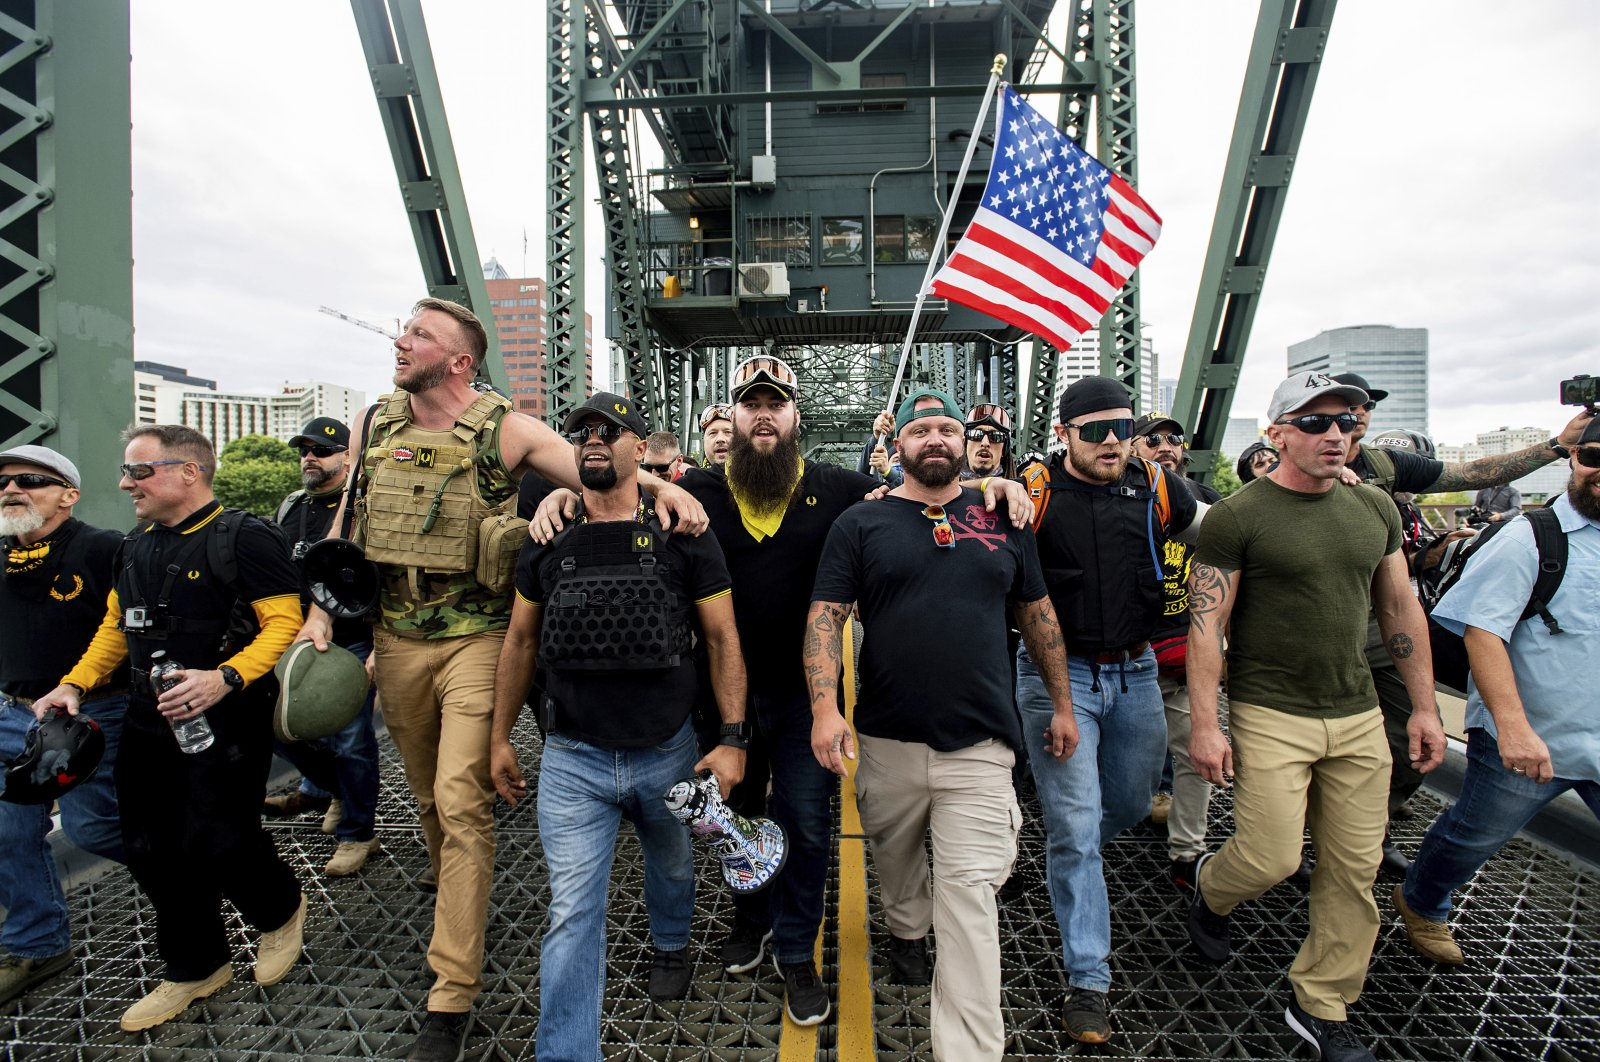 In this Aug. 17, 2019, file photo, members of the Proud Boys and other right-wing demonstrators march across the Hawthorne Bridge during a rally in Portland. At least several thousand people are expected in Portland on Sept. 26, 2020, for a rally in support of President Donald Trump and his re-election campaign as tensions boil over nationwide following the decision not to charge officers for killing Breonna Taylor. (AP Photo)